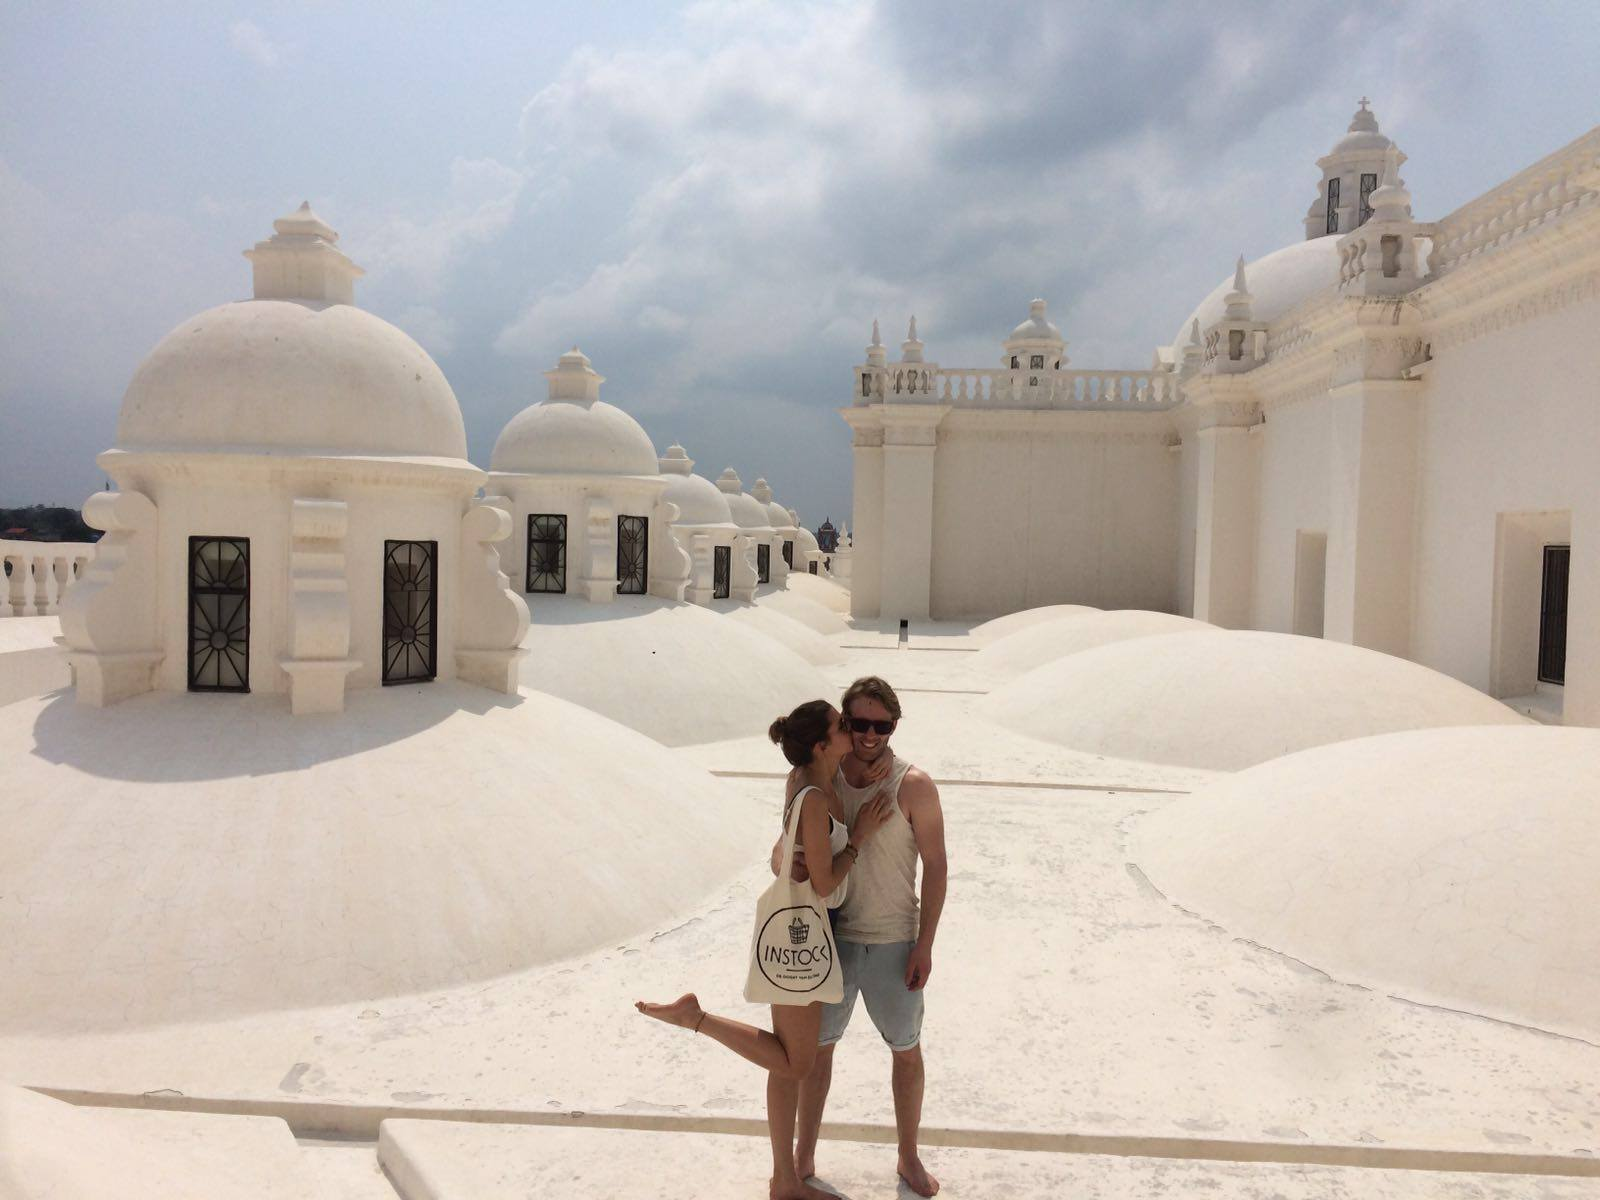 nicaragua-leon-cathedral-white-roof